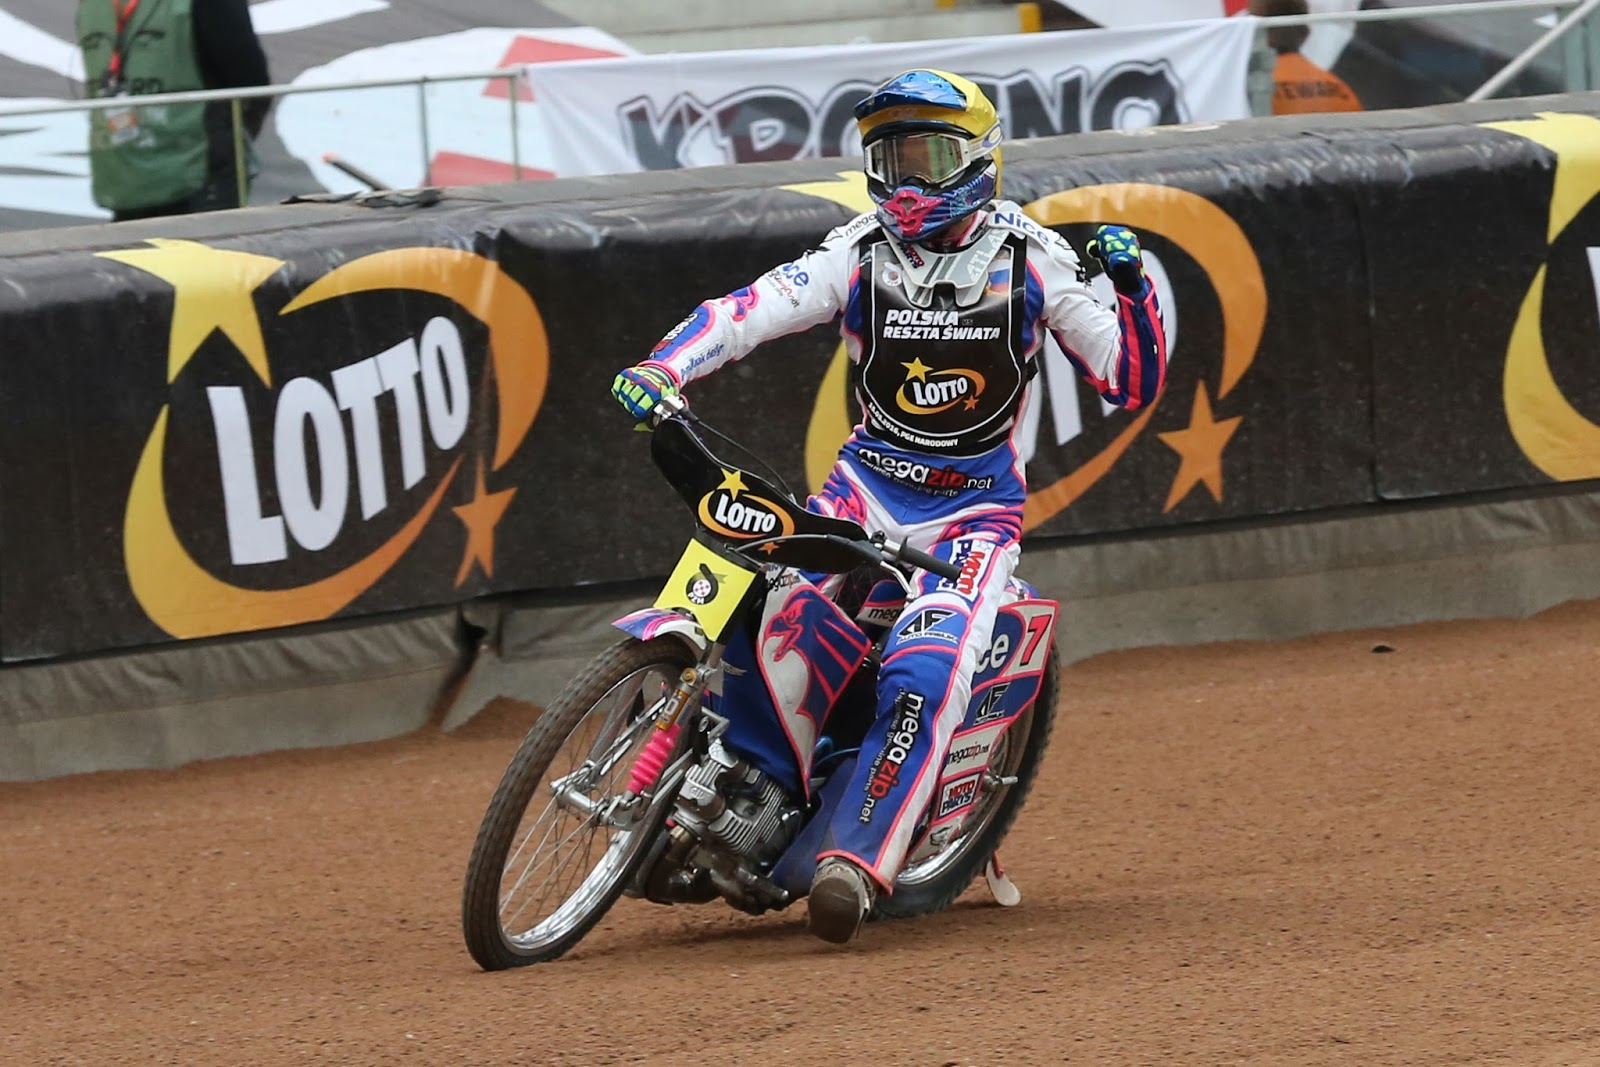 speedway european championship dates Glasgow 2018 european cycling bmx championships (qualifier) knightswood park, glasgow fri 10 aug 2018, 11:45 (buy multiple dates) please note:under 14s must be accompanied by an adult over 18 children aged 2 years plus must have a ticket babes in arms (under 2 years old) will notmore close close.